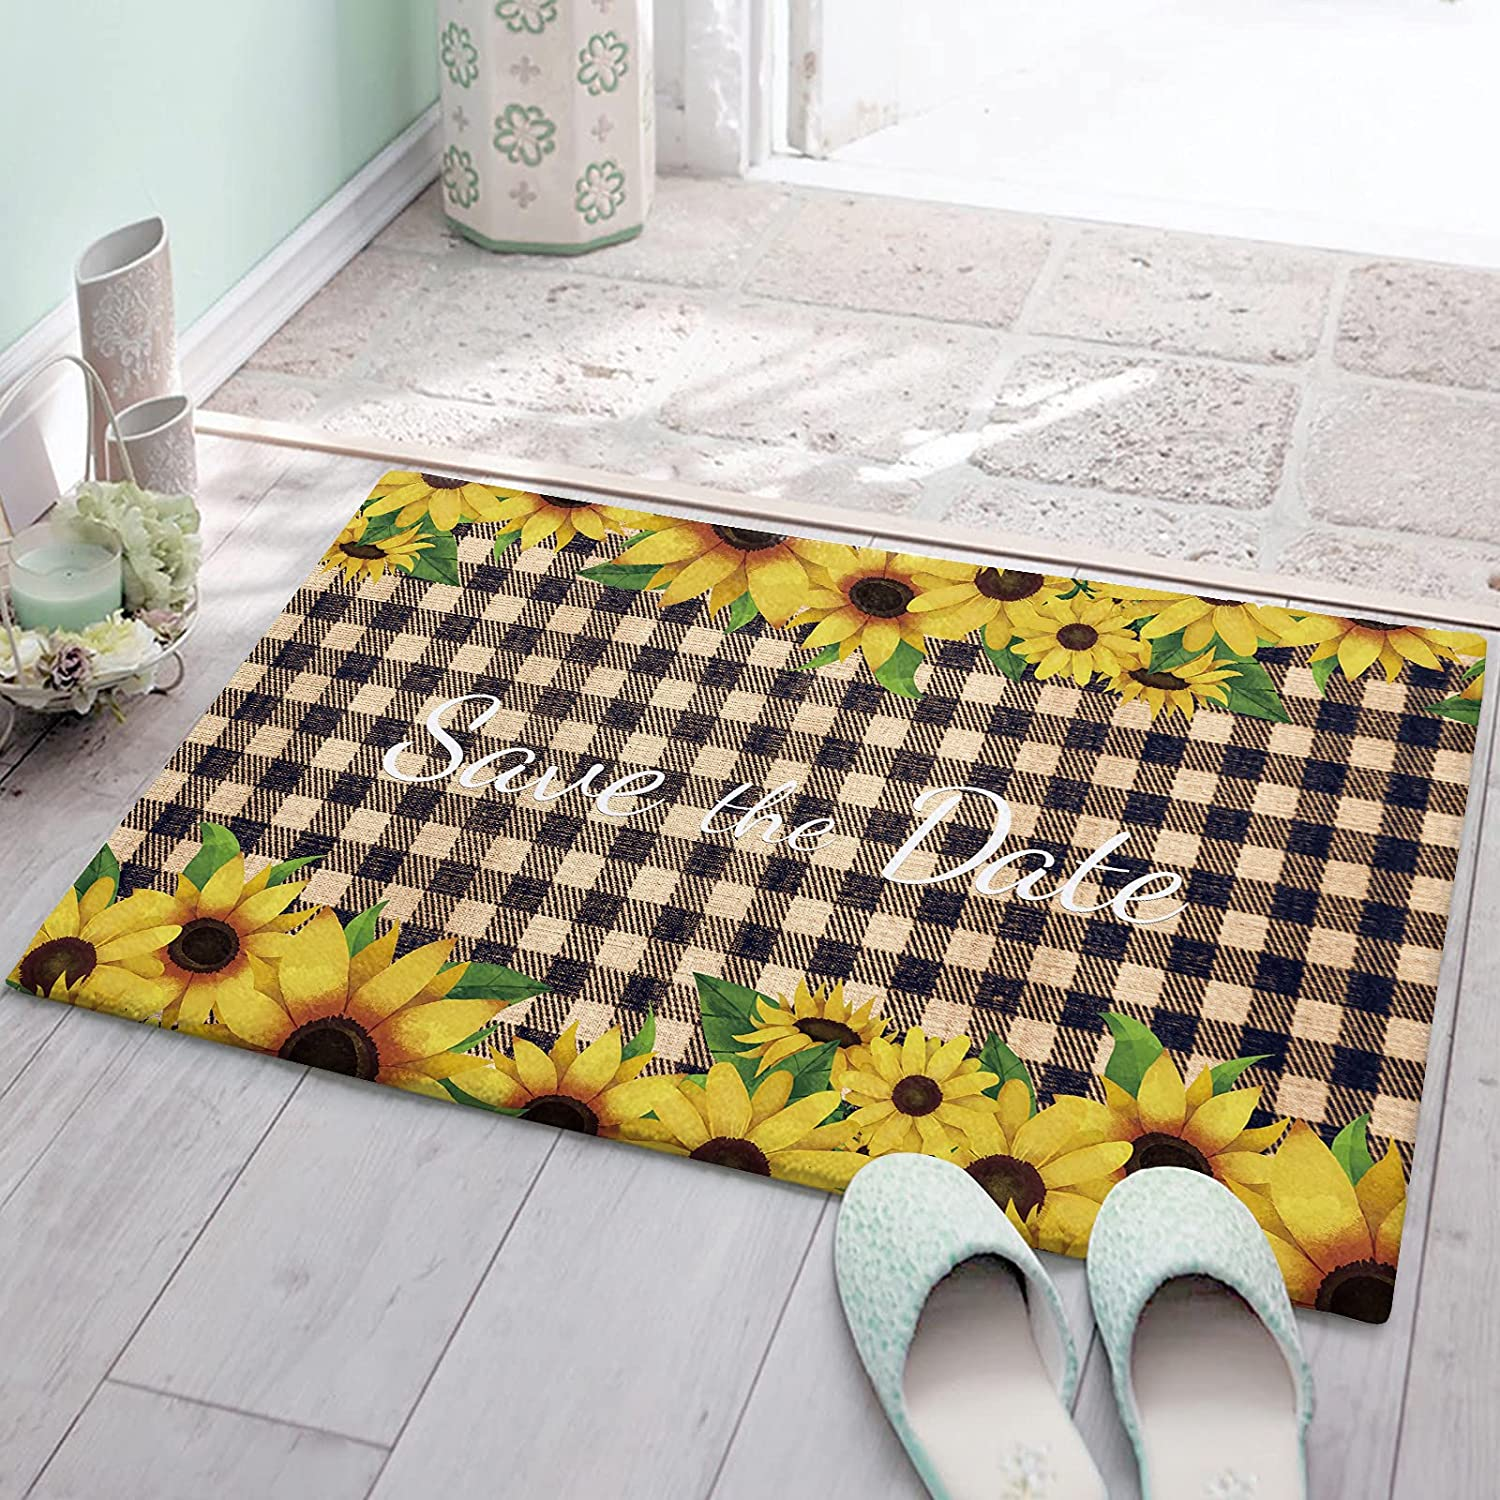 CozyPlushDoormats Challenge the lowest price of Japan Max 82% OFF 20x32in AbsorbentCushionedKitchenMatAre